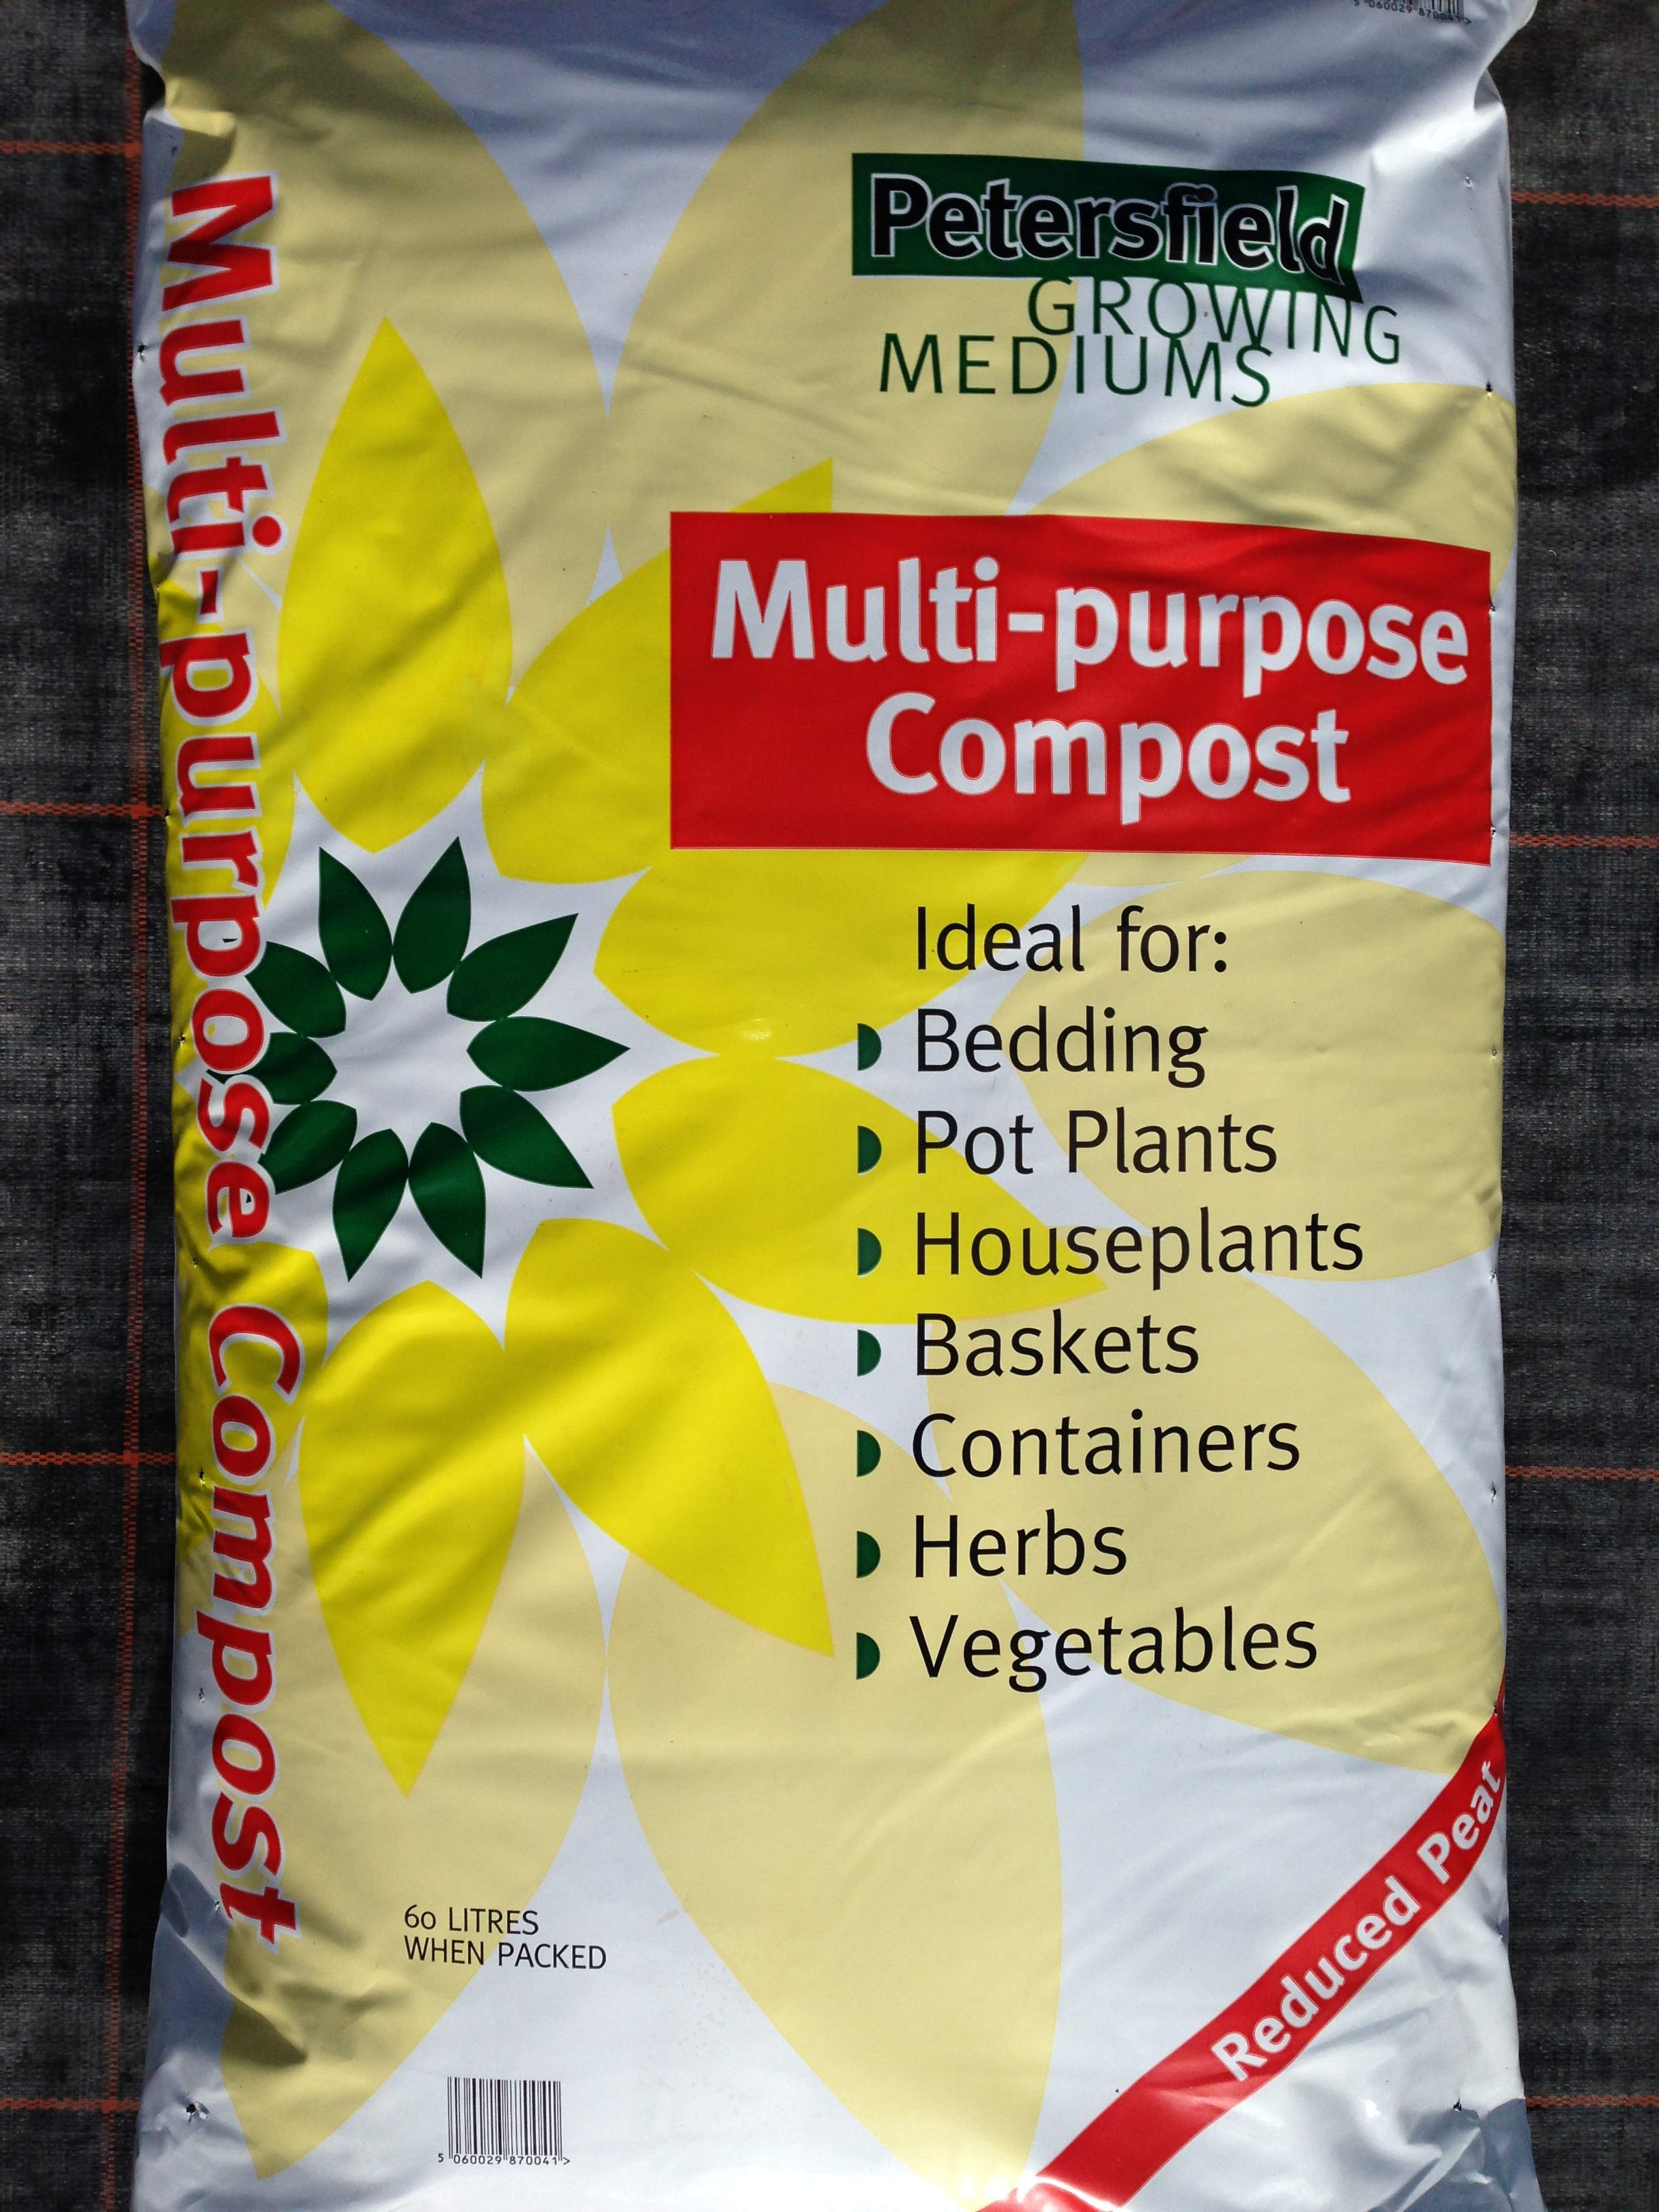 Petersfield Multi-purpose Compost 60 Litres £8.00; 25 Litres £4.25